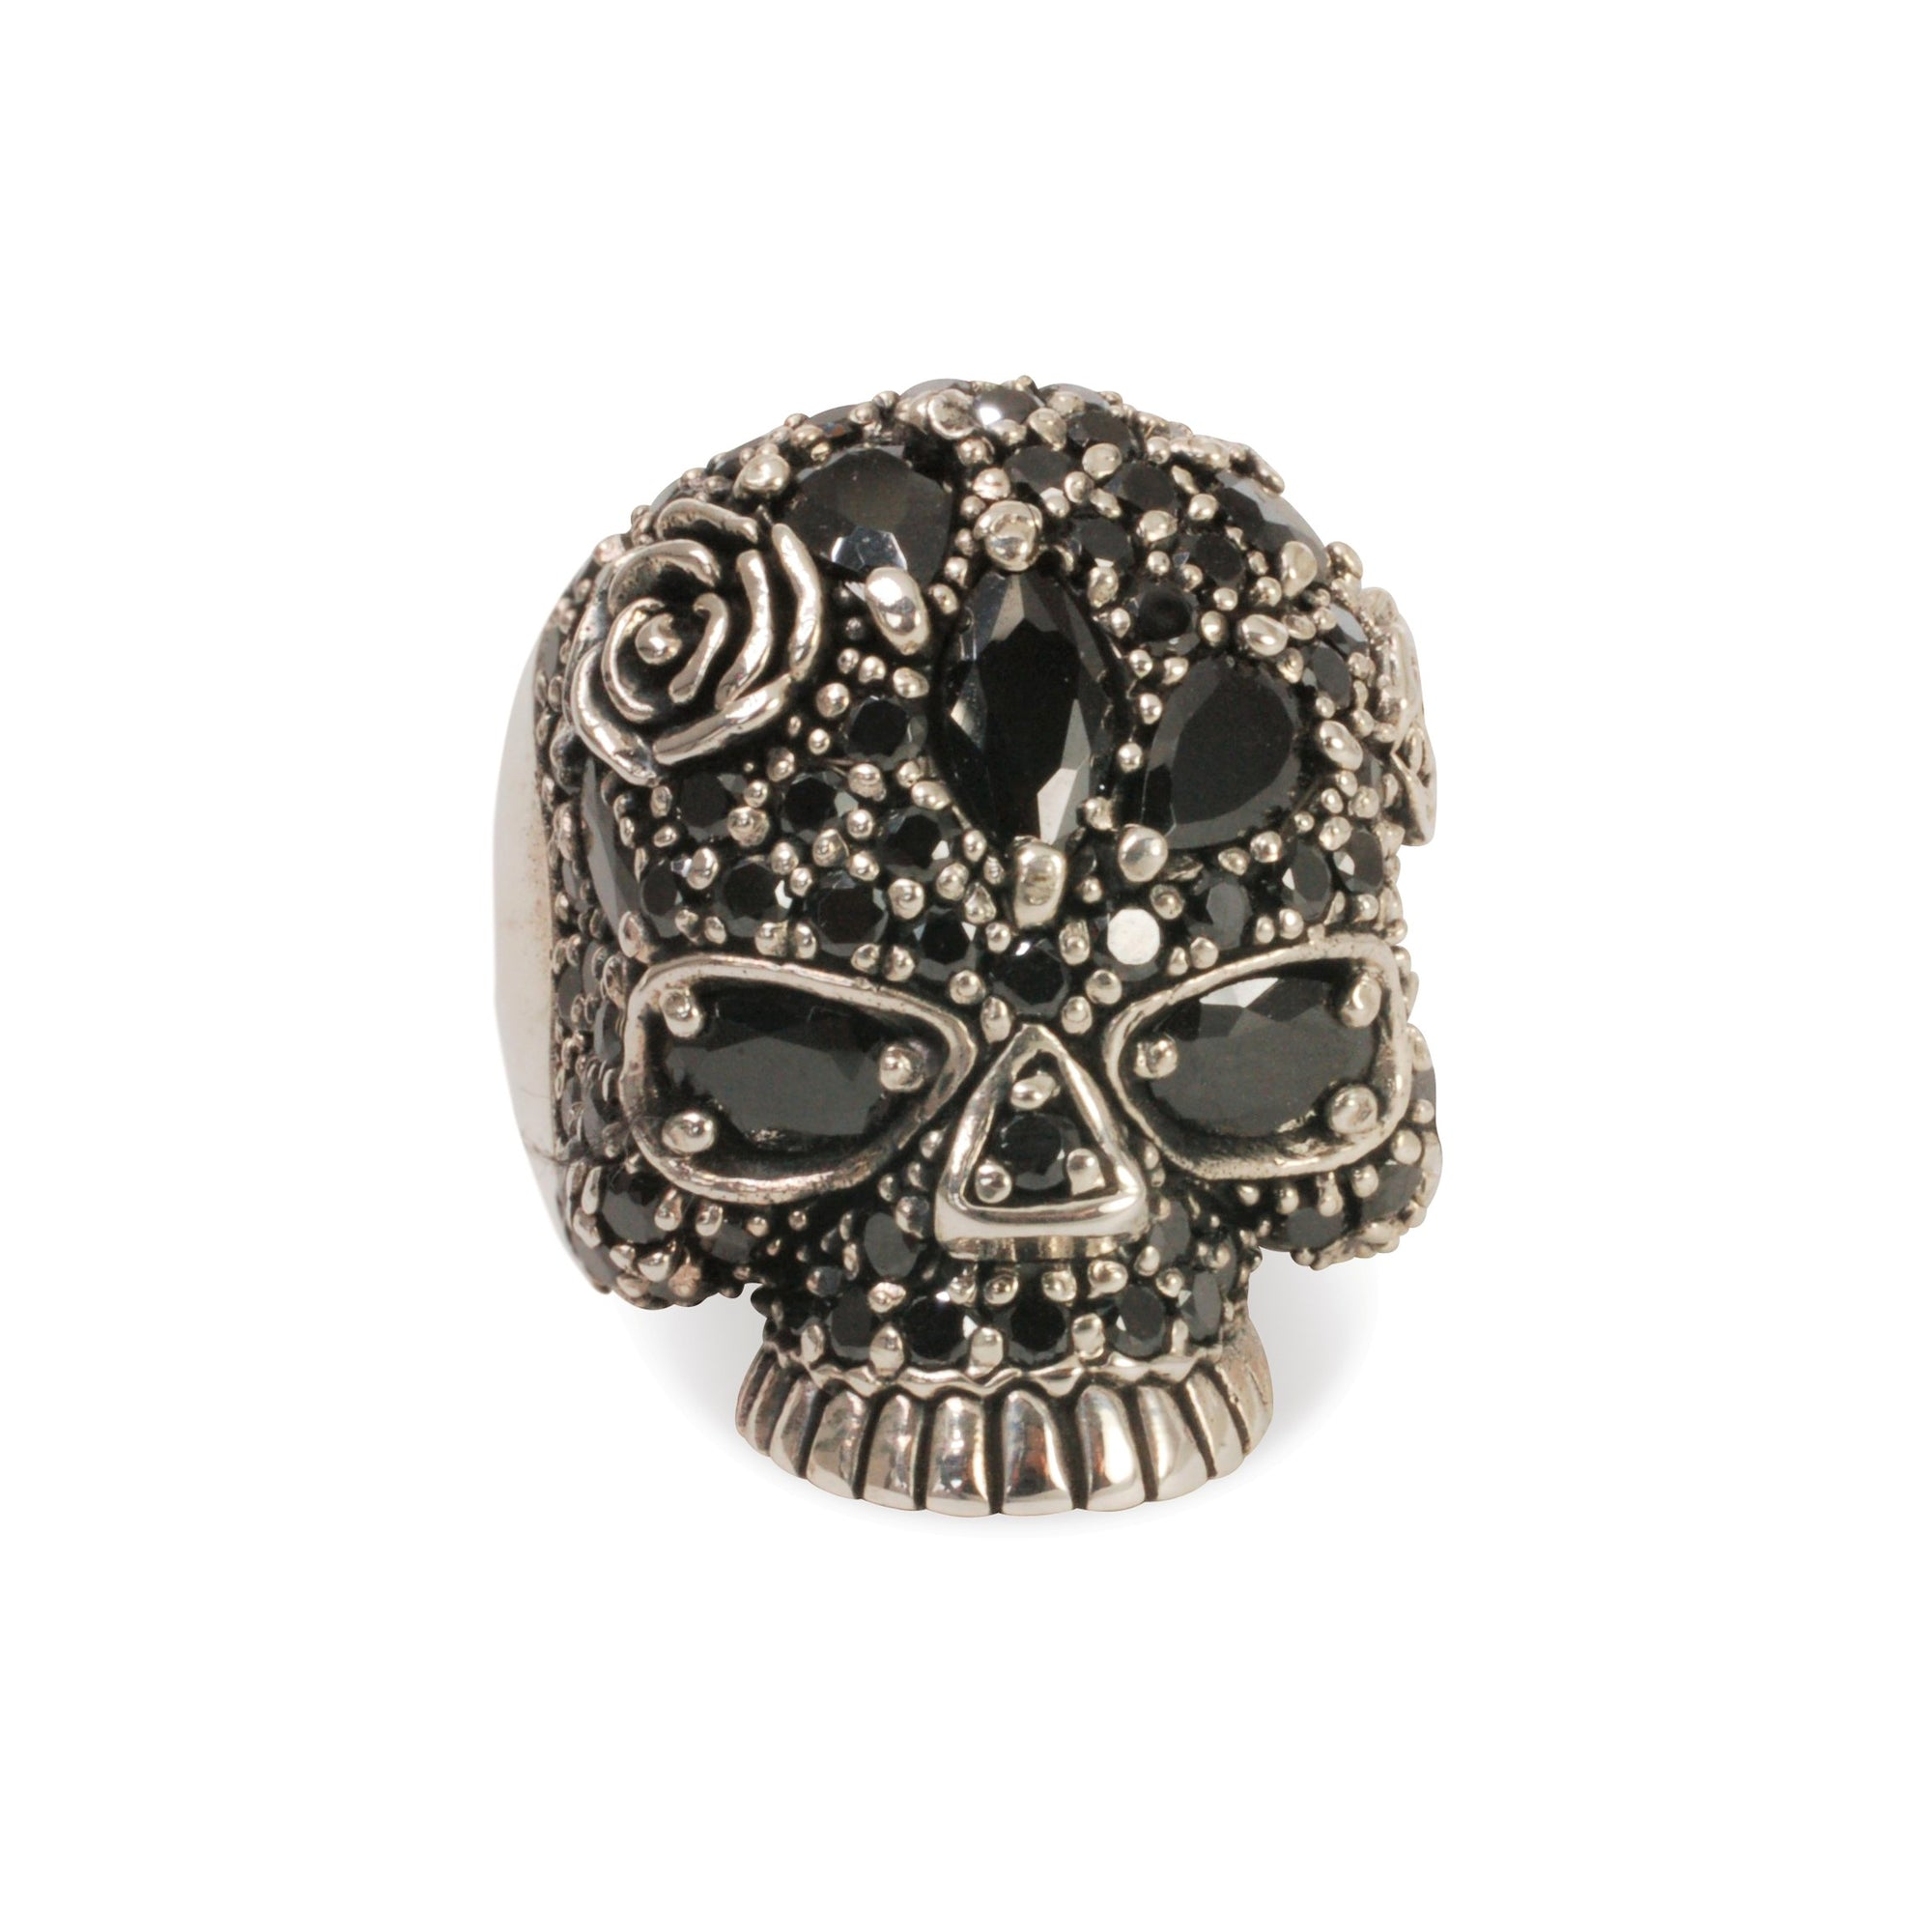 Skull ring with black cubic zirconia